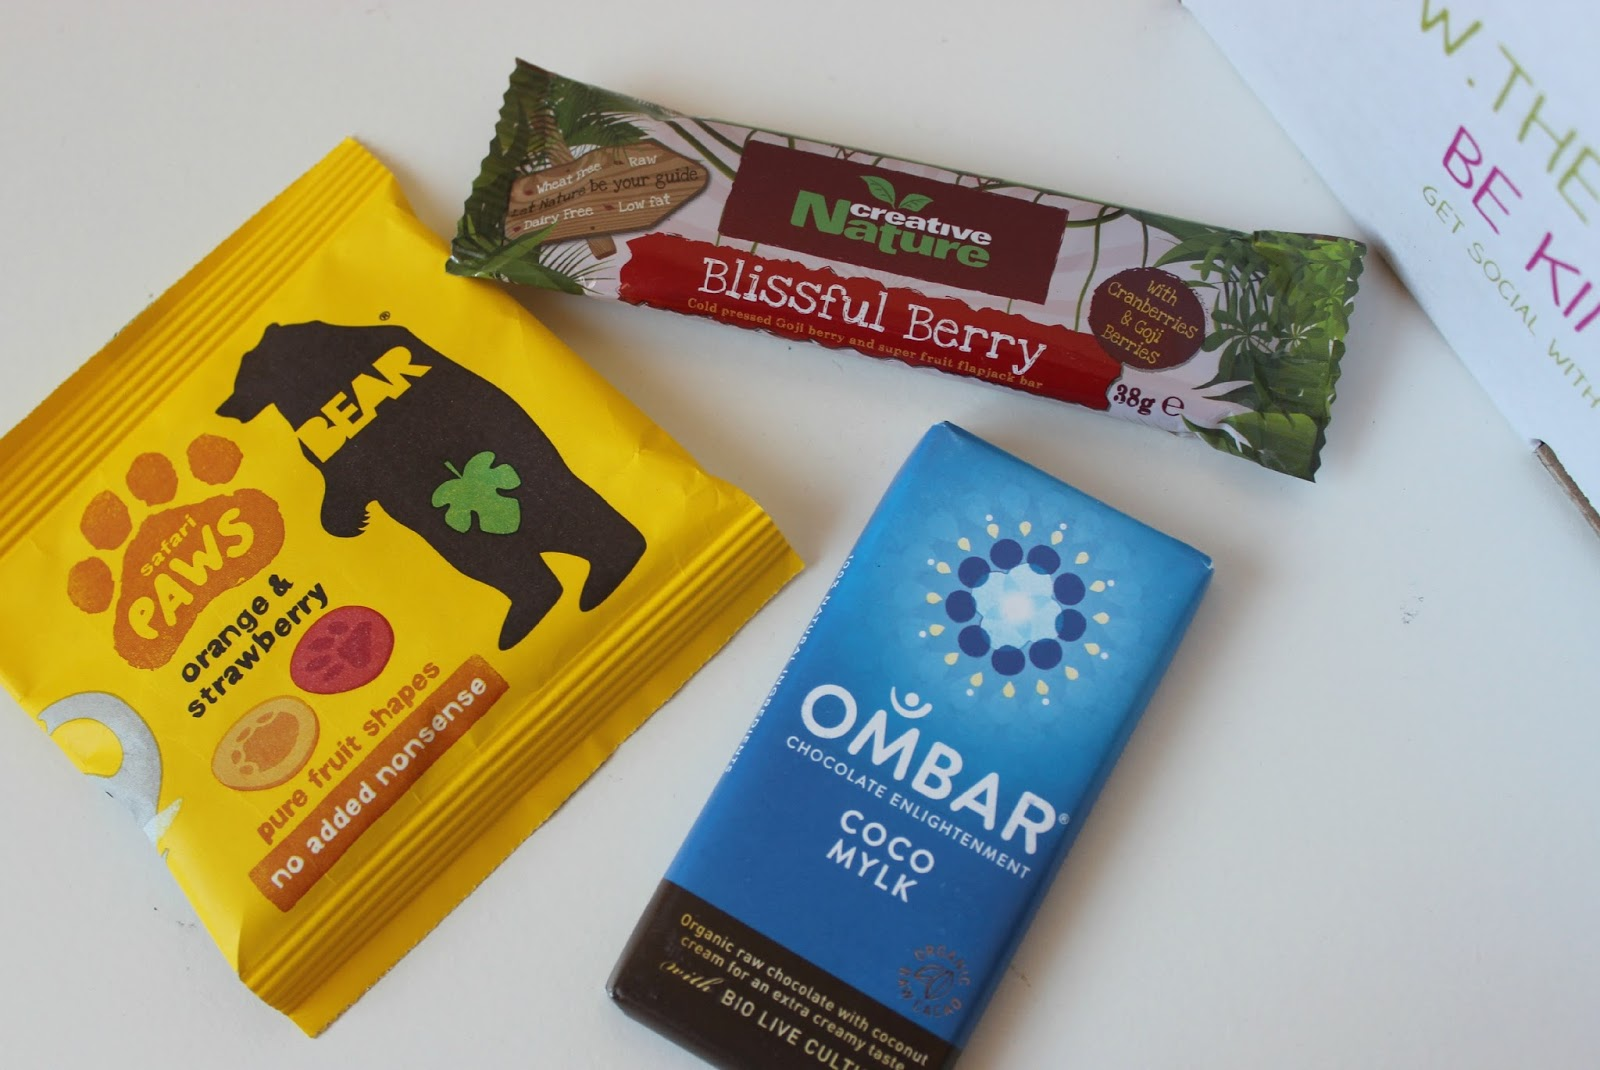 A picture of Bear Paws, Ombar Organic Coco Mylk Bar and Creative Nature Blissful Berry Snack Bar